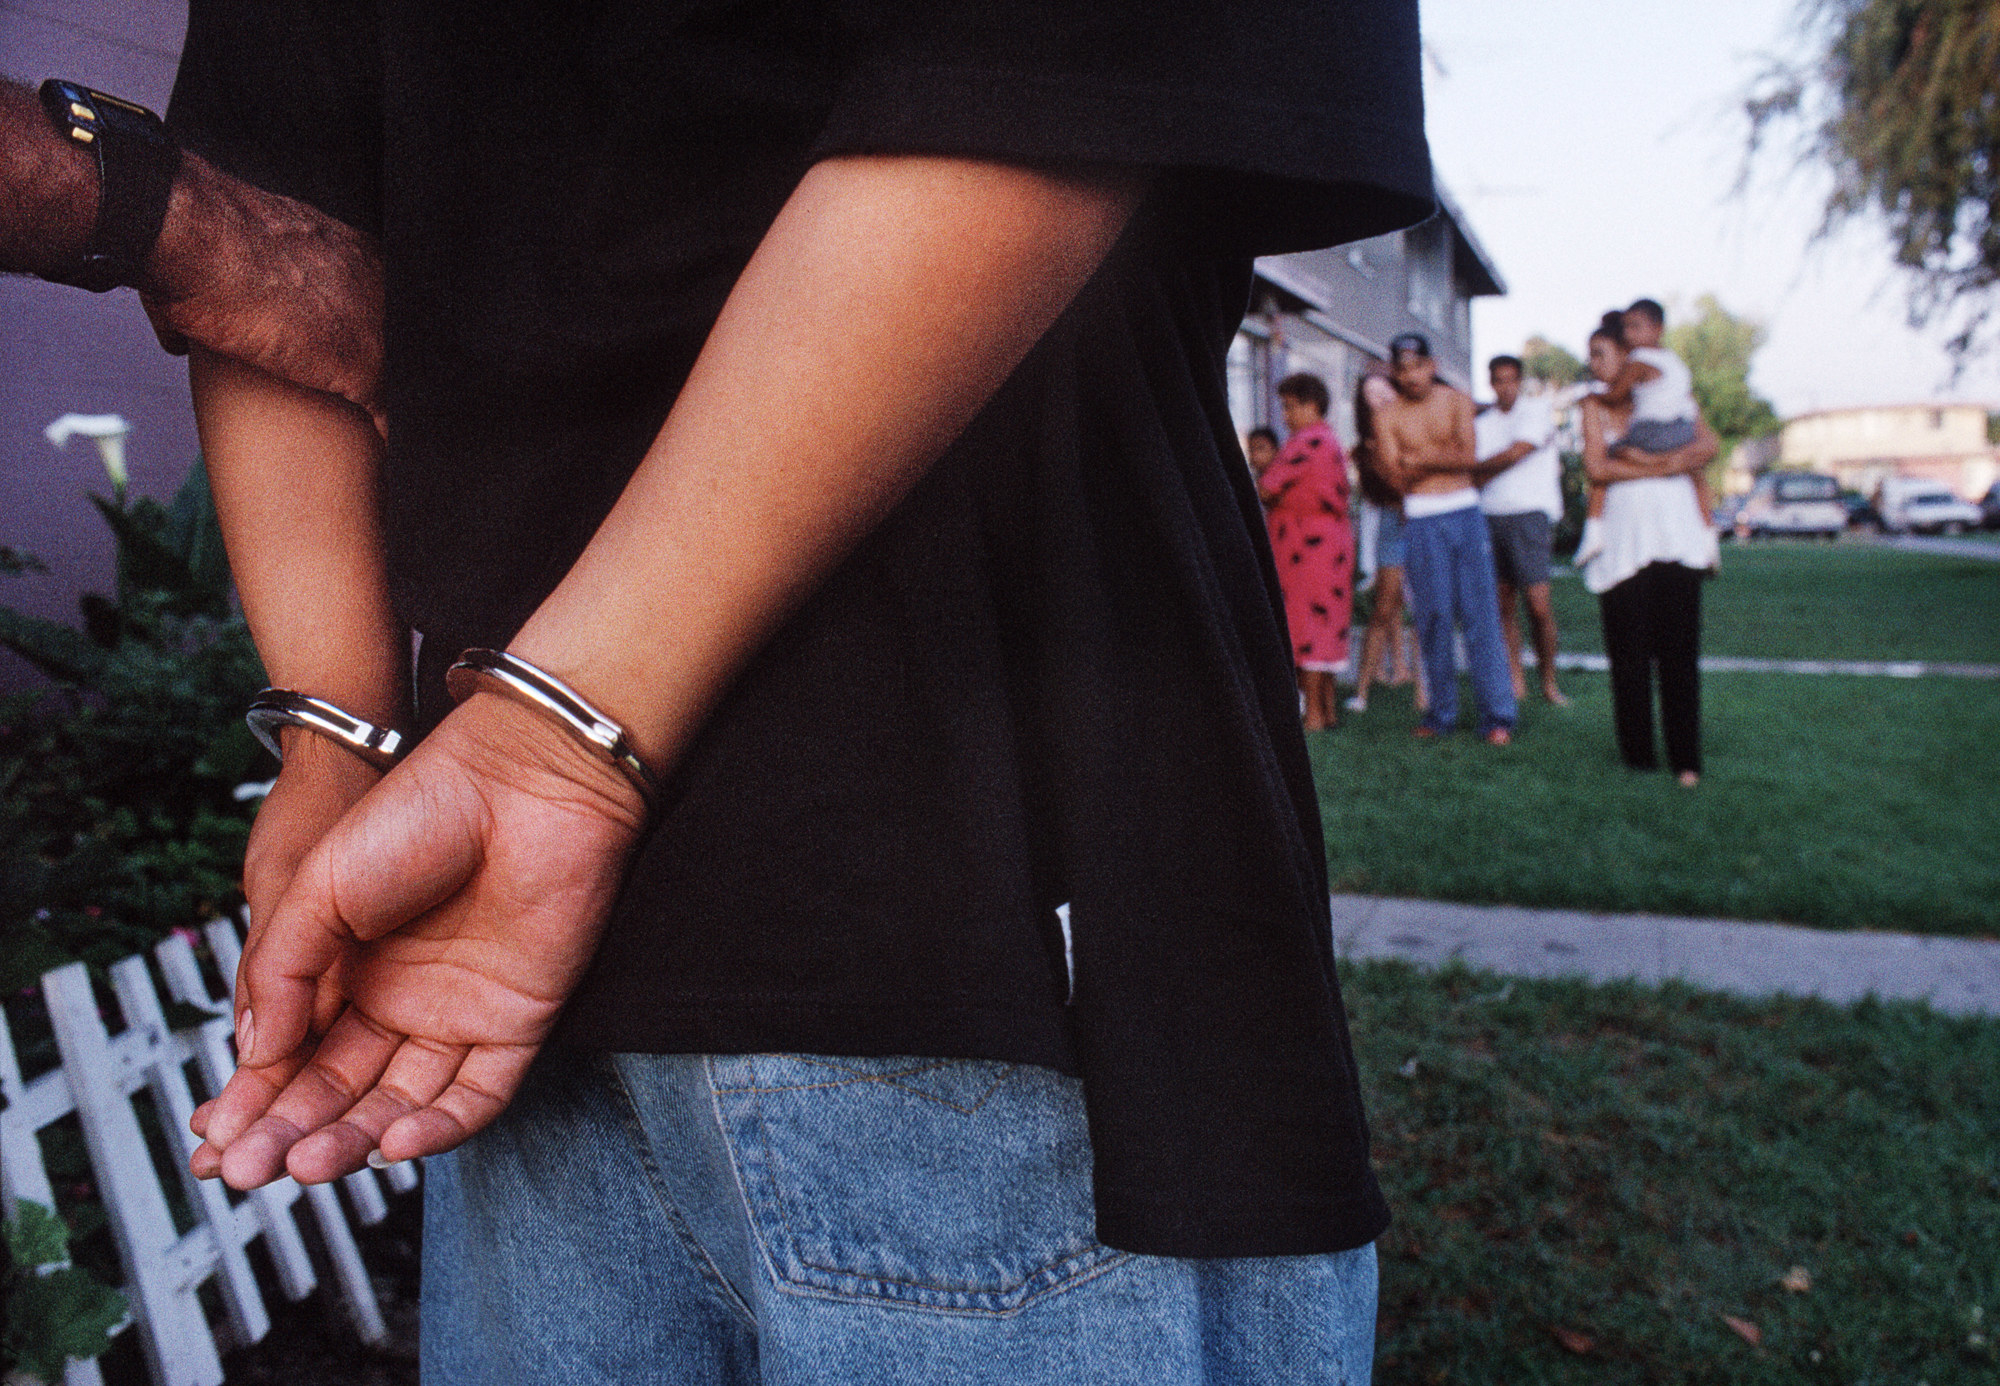 A man in handcuffs is seen from behind while a family watches in the distance, out of focus